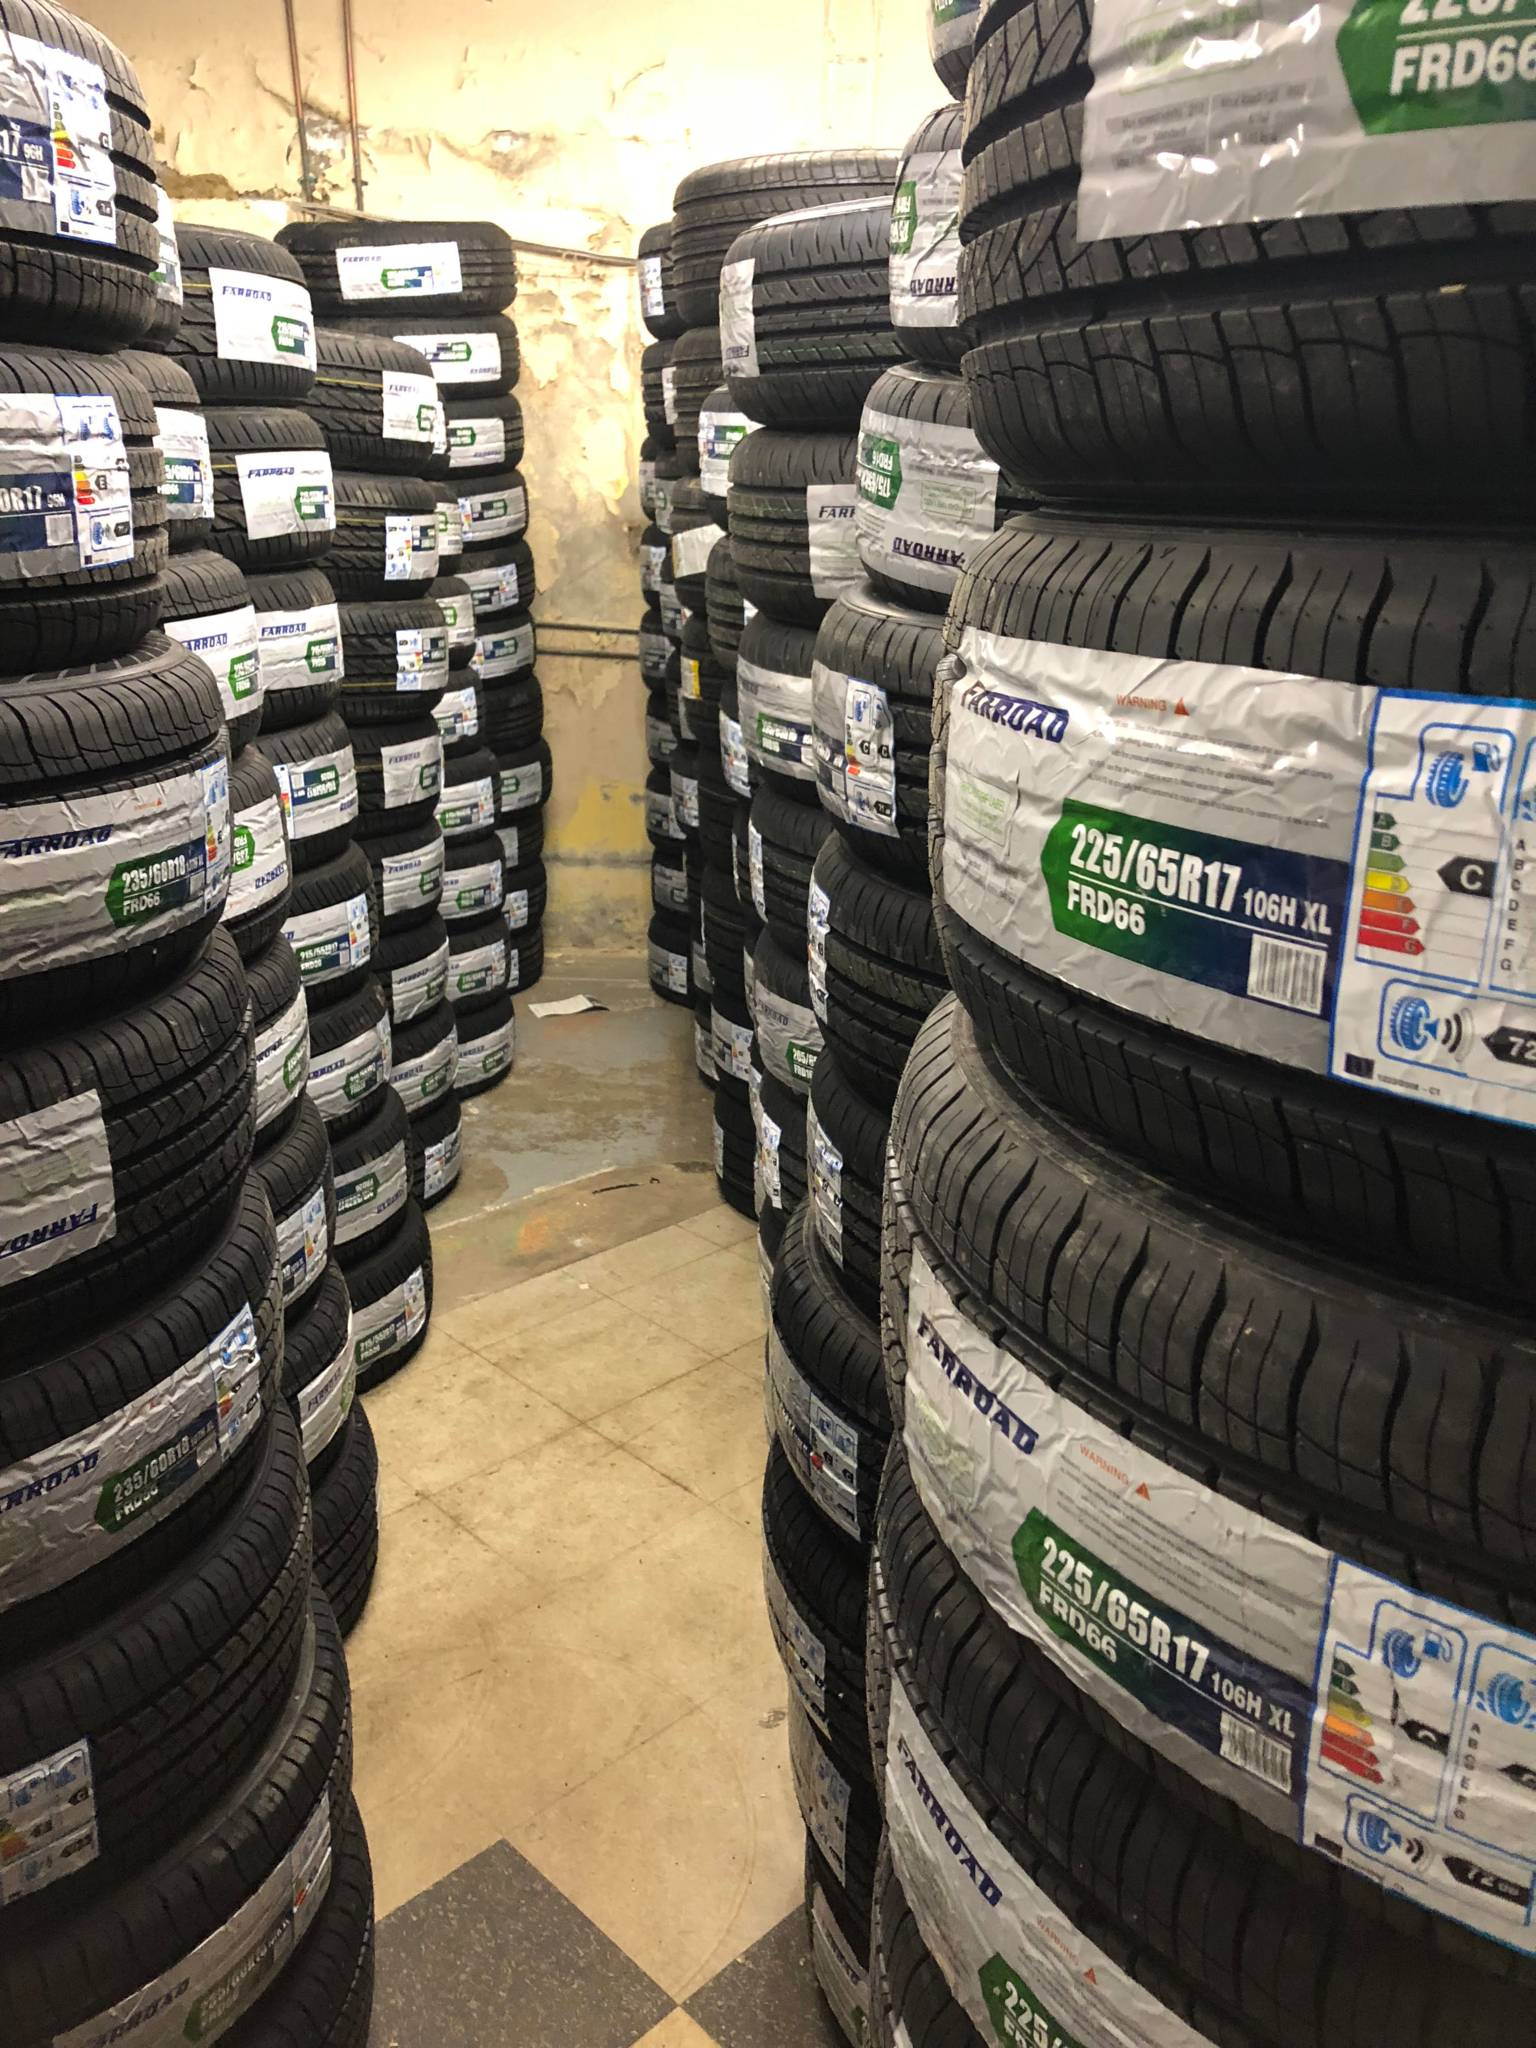 Bank Street Tires & Auto Glass in Ottawa: The skilled techs at Bank Street Tires and Auto Glass deftly refresh vital car parts. When road debris pocks or cracks windshields, Bank Street's staff can refit new glass with factory-finish results. To keep cars safe and planted, the shop maintains